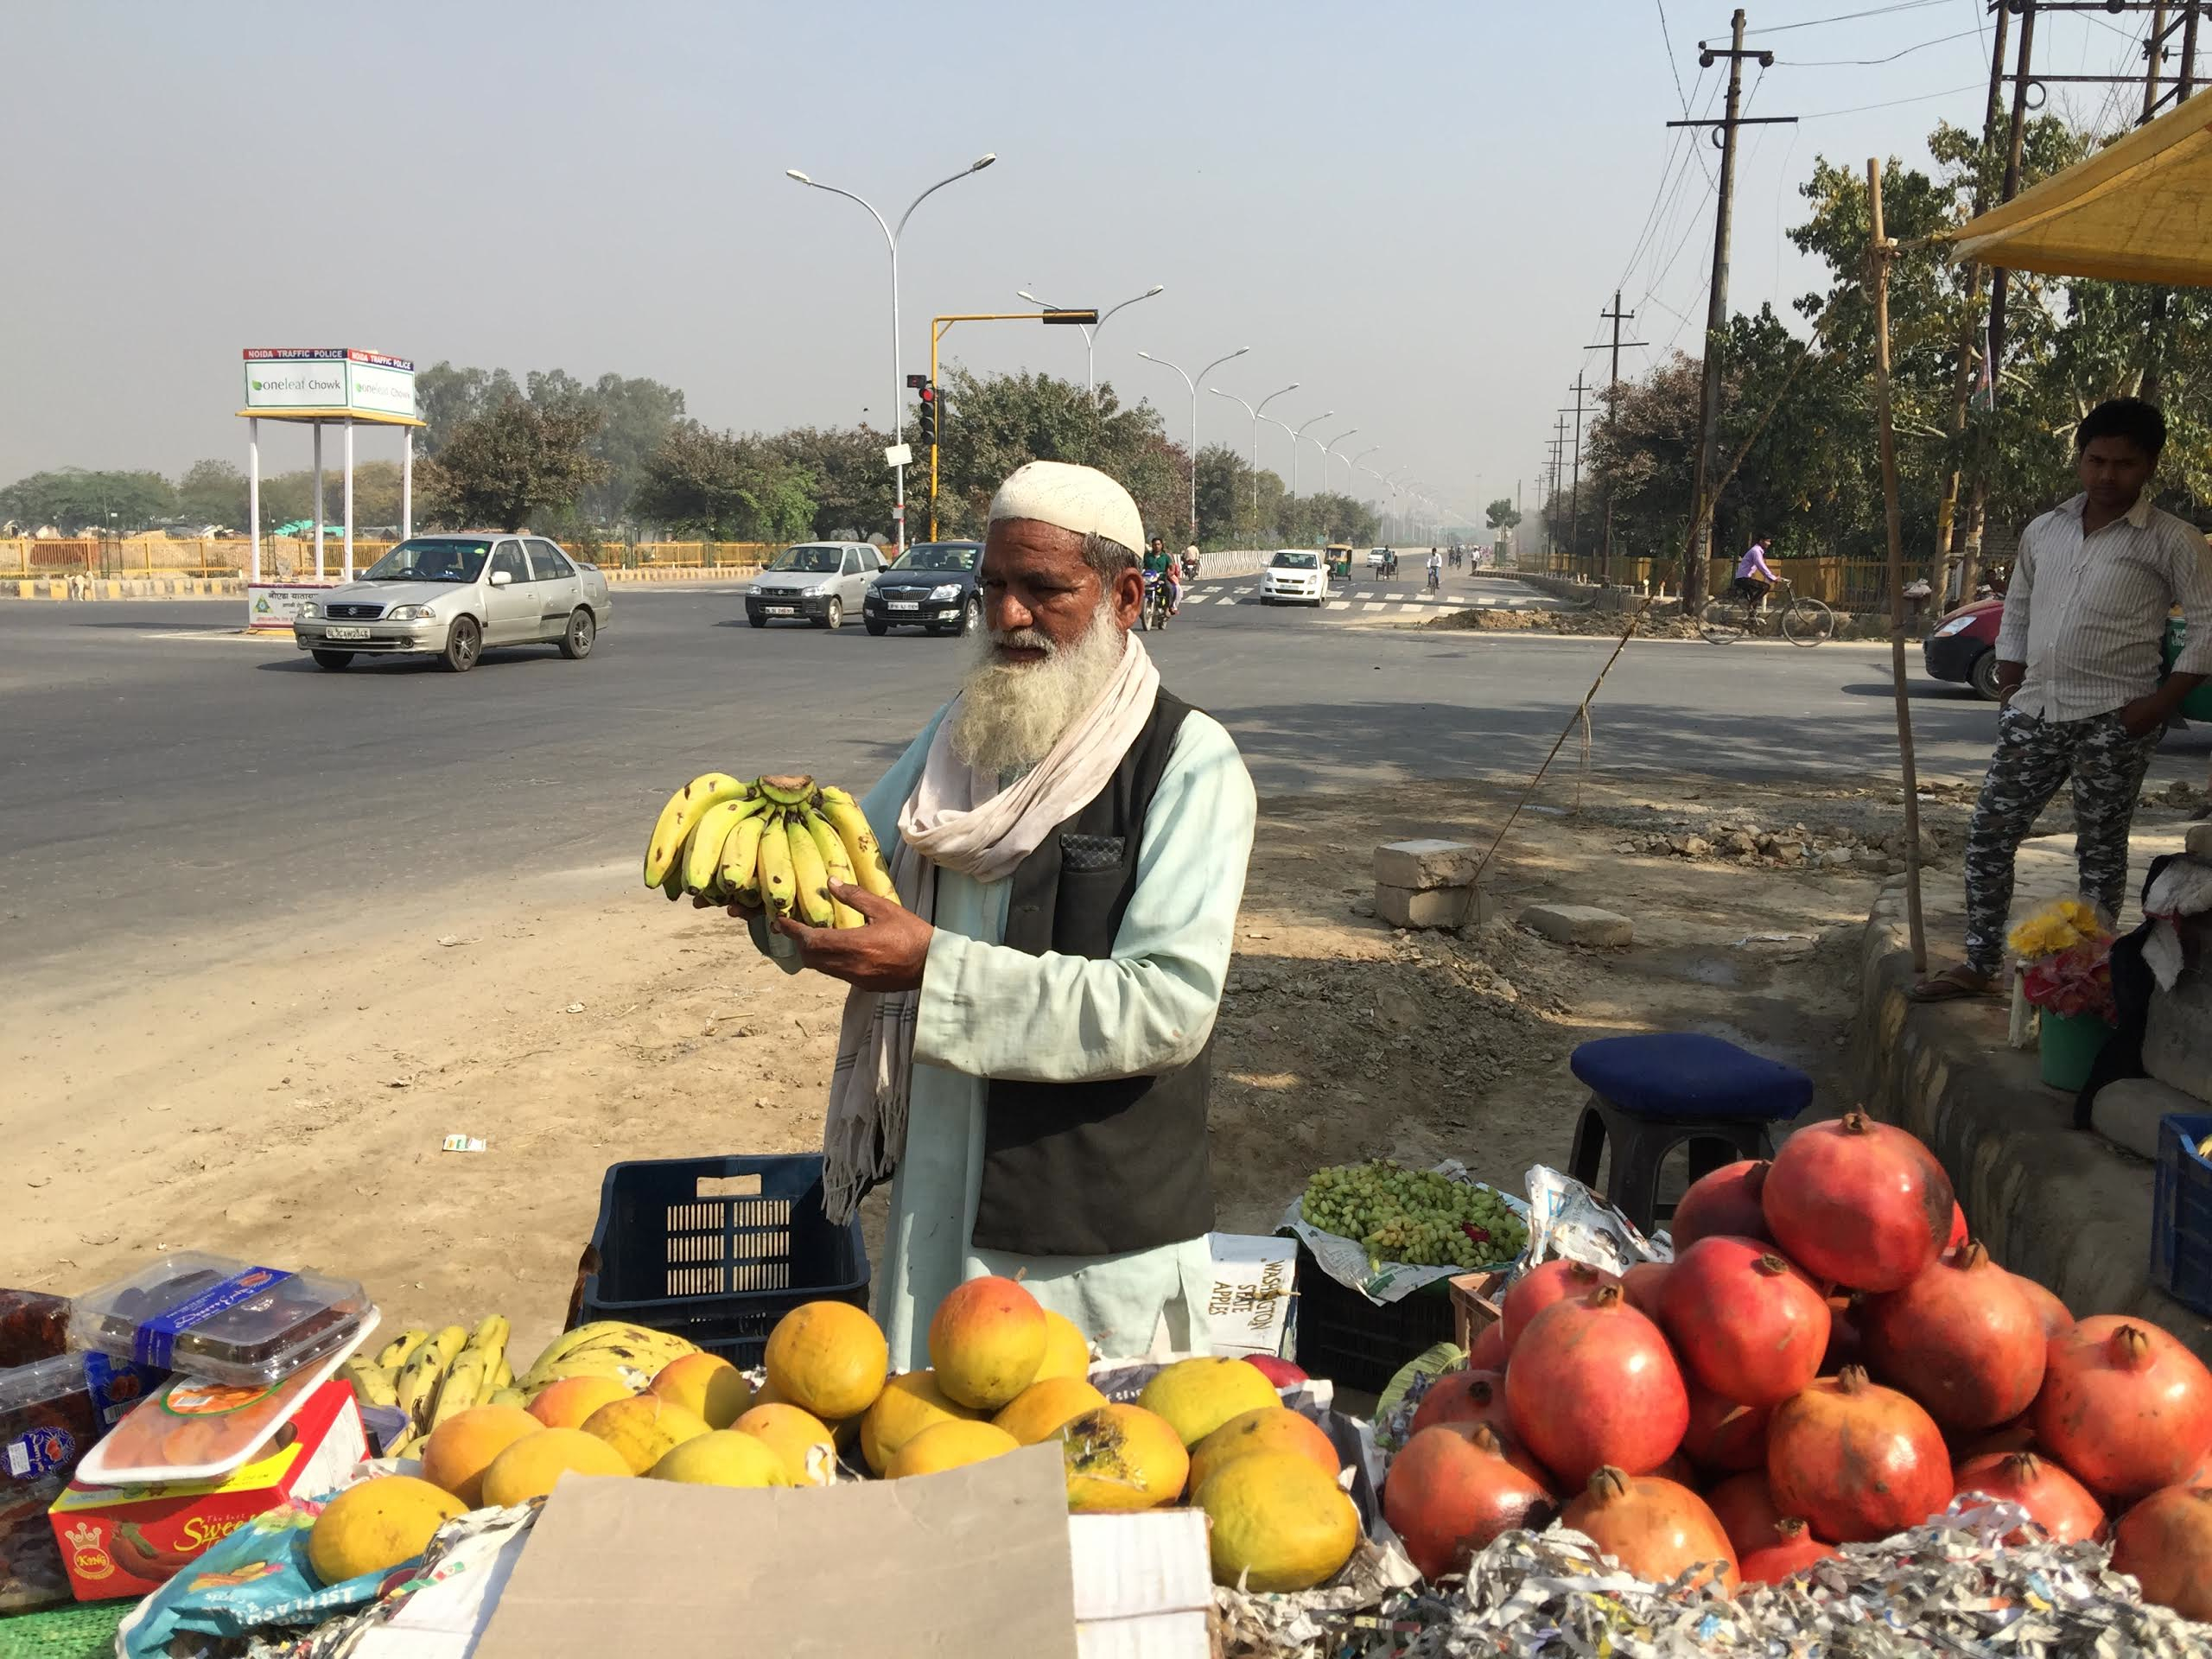 Image of: Old Man India Is Currently Home To Over 100 Million Elderly People Credit Neeta Lalips Inter Press Service No Rest For The Elderly In India Inter Press Service